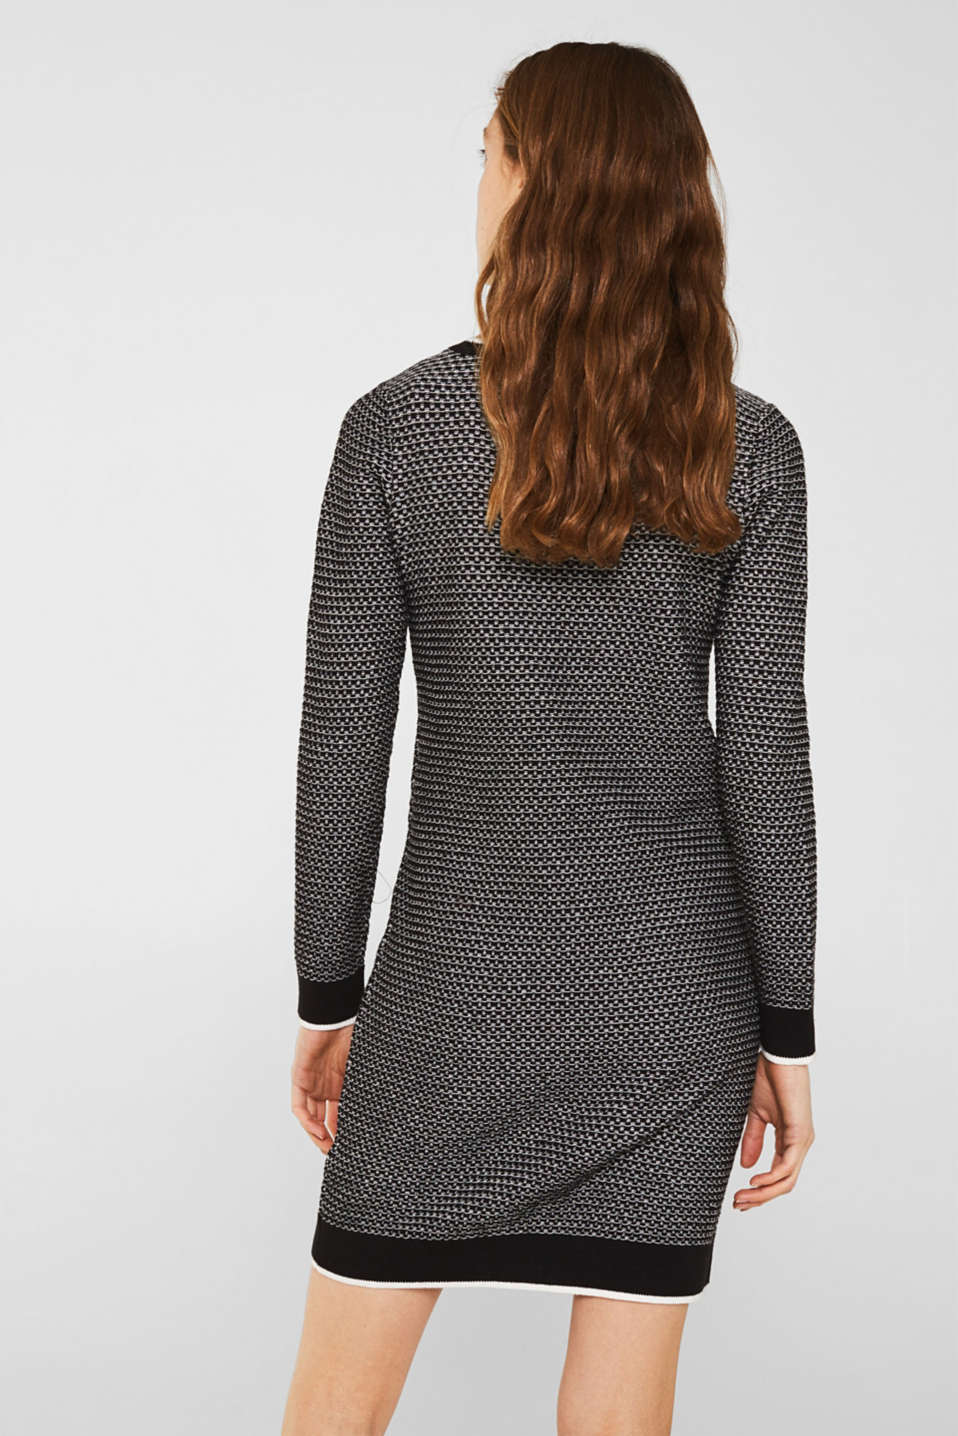 Knit dress with texture, 100% cotton, BLACK 2, detail image number 2